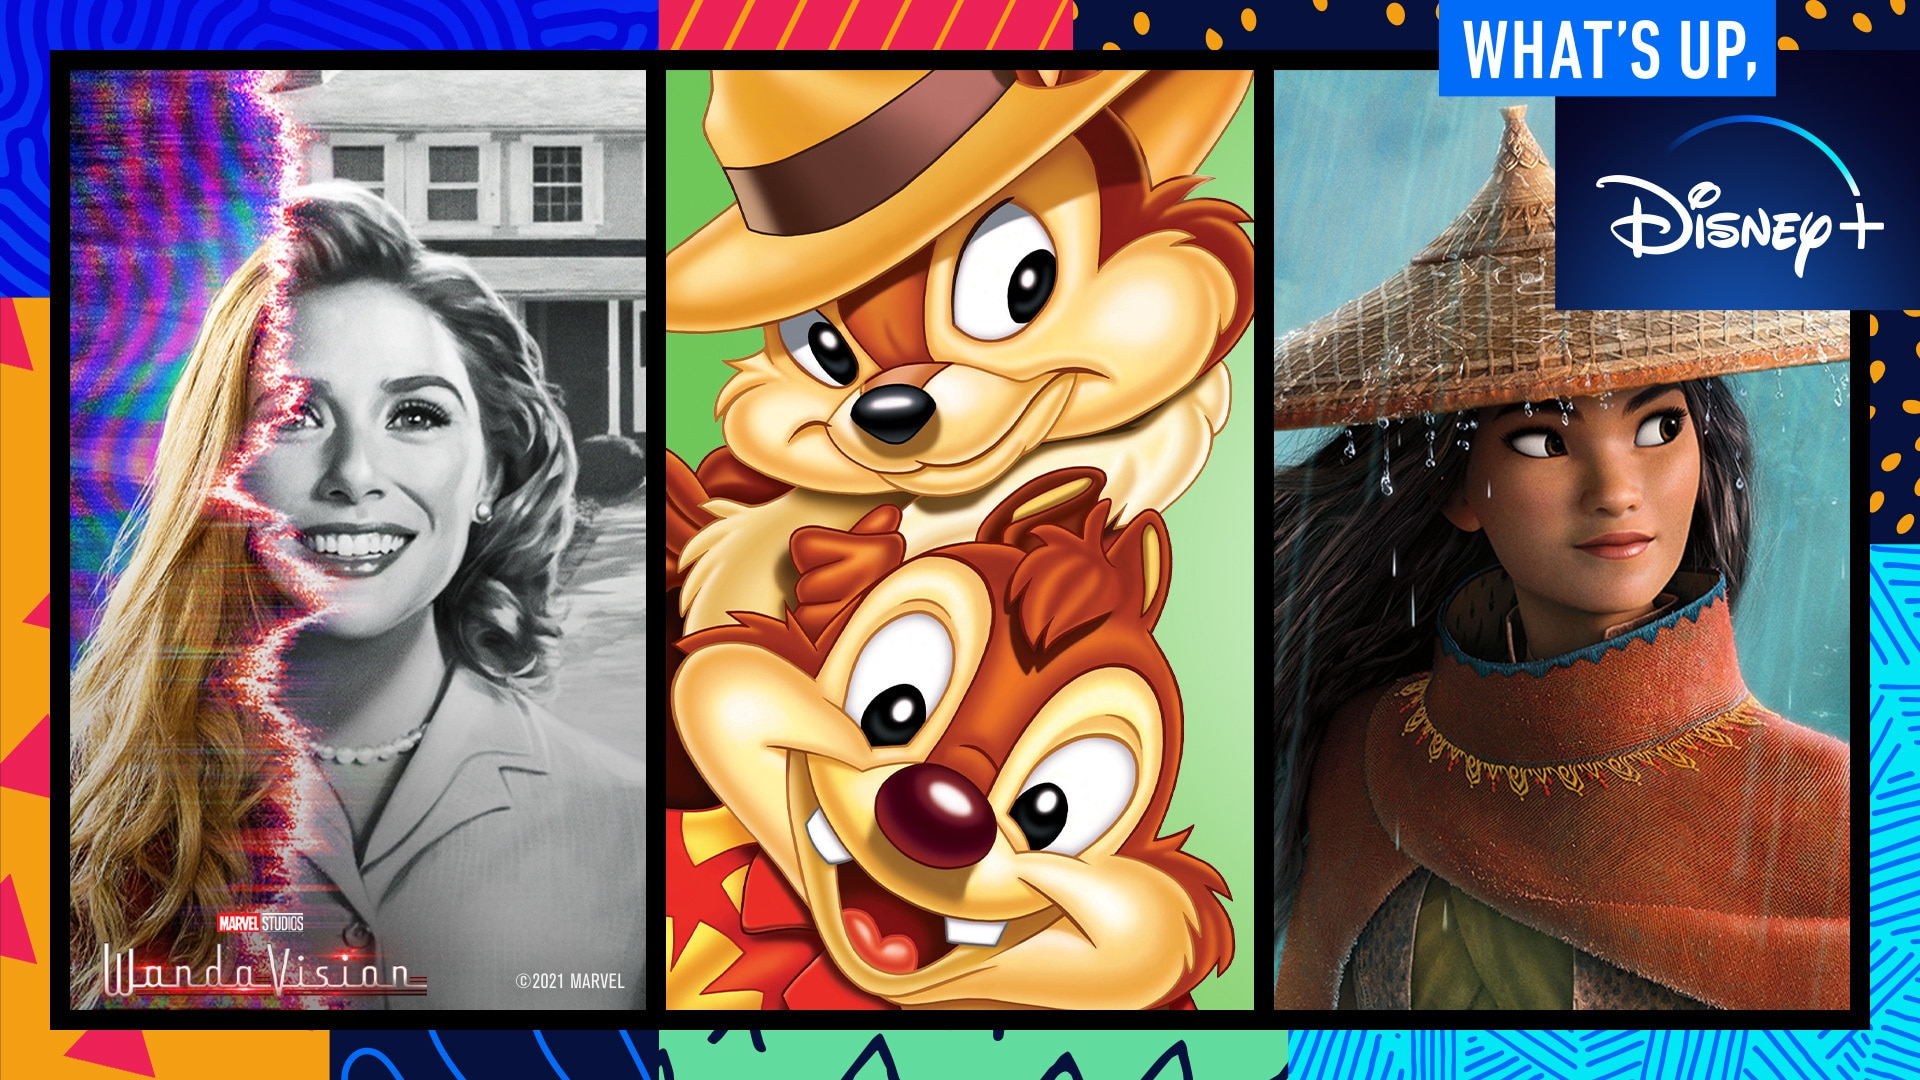 Disney Afternoon Trivia and the Cast of Raya and the Last Dragon | What's Up, Disney+ | Episode 18